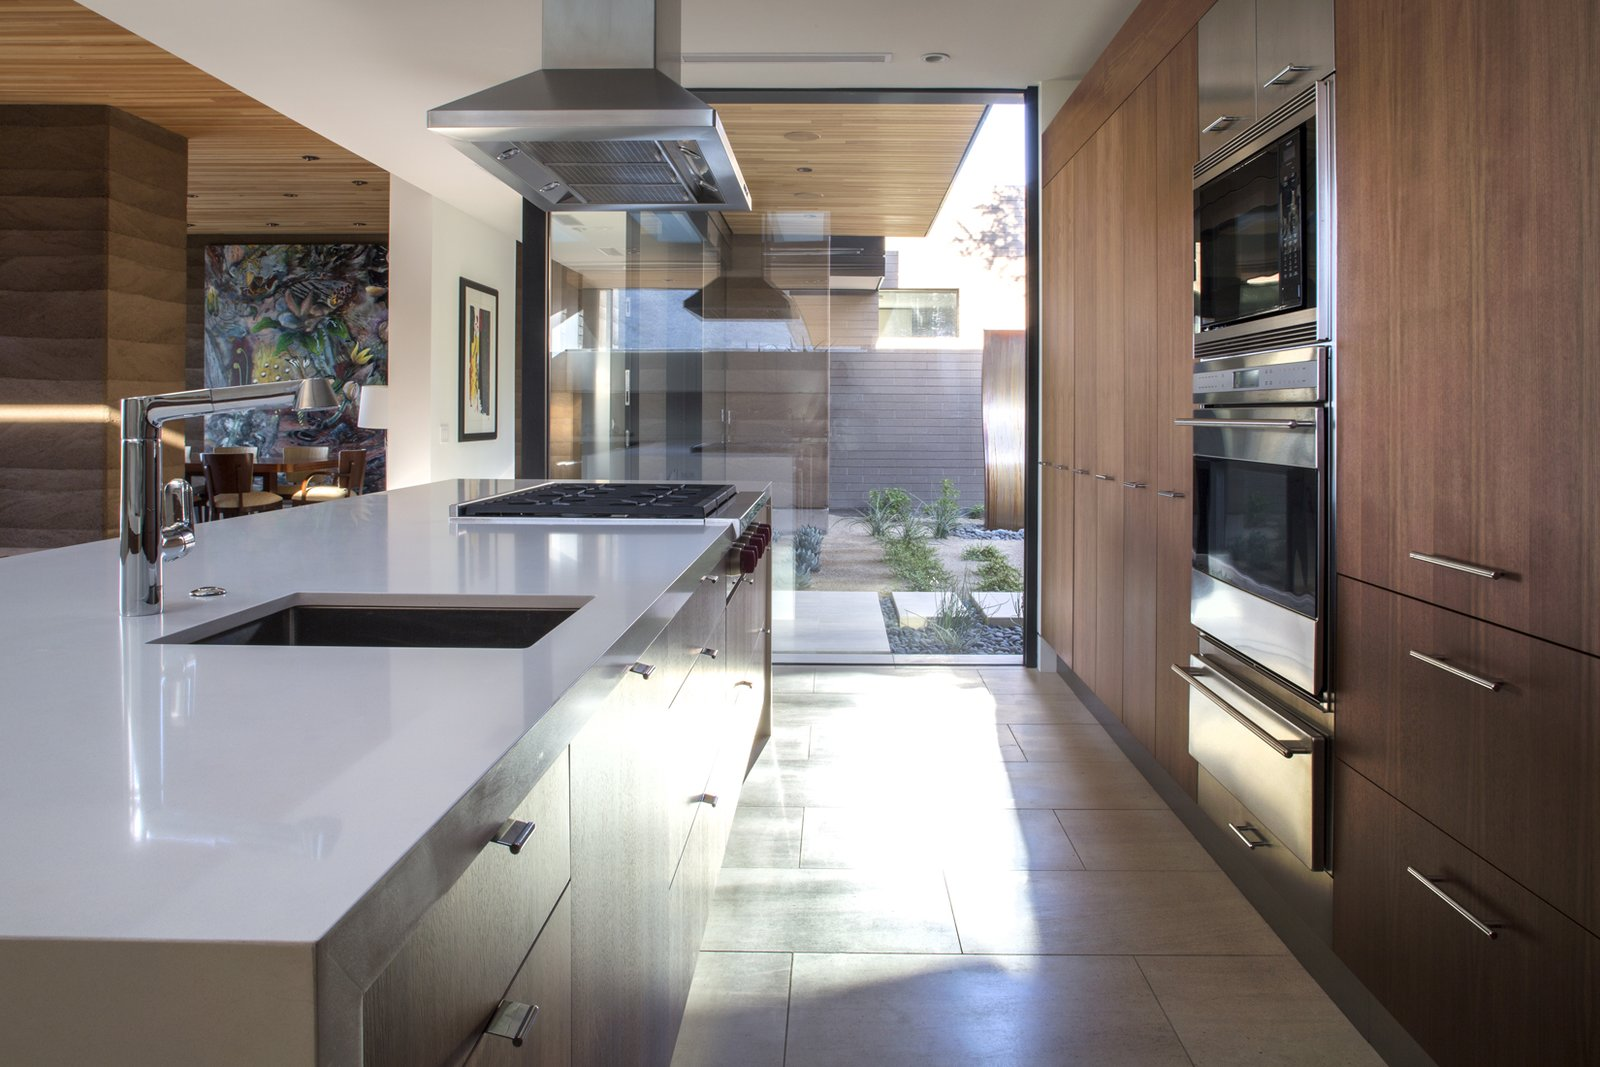 Kitchen, Limestone Floor, Wood Cabinet, Quartzite Counter, Recessed Lighting, Refrigerator, Wall Oven, Microwave, Cooktops, Range Hood, and Undermount Sink  Rammed Earth Modern